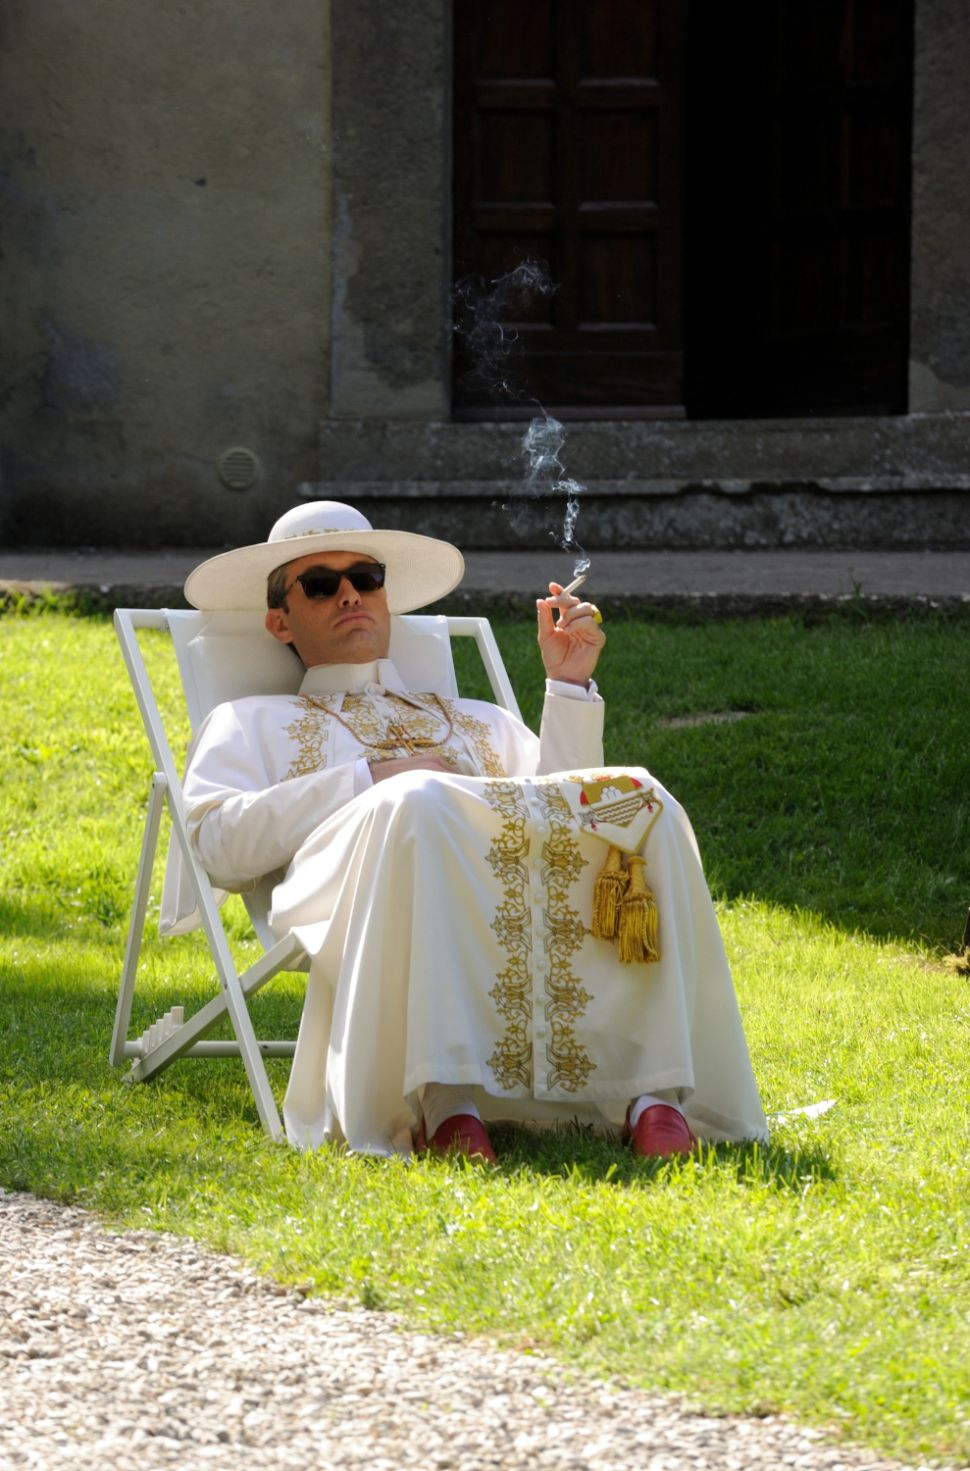 'The Young Pope' Recap, Episode 8: Uganda Be Kidding Me